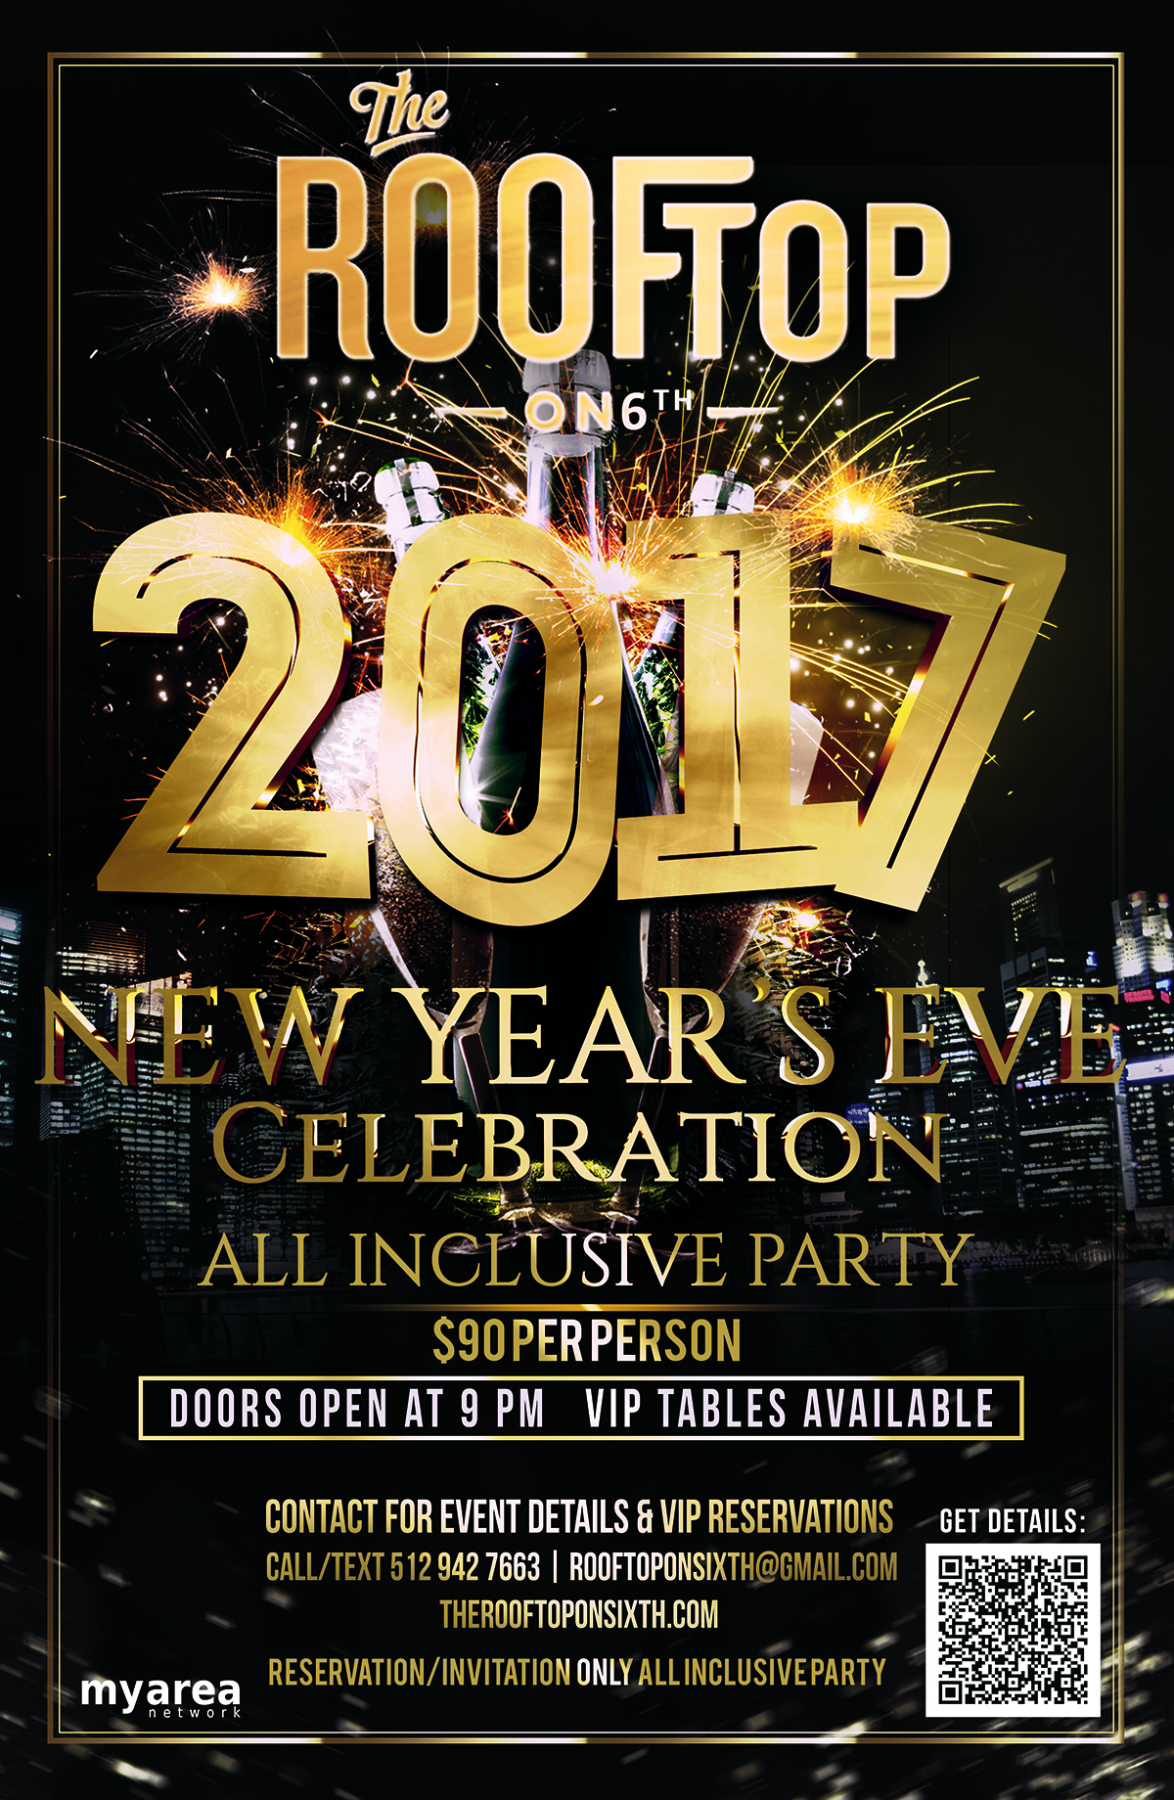 New Year's Eve 2017 VIP Party at The Rooftop on 6th ...